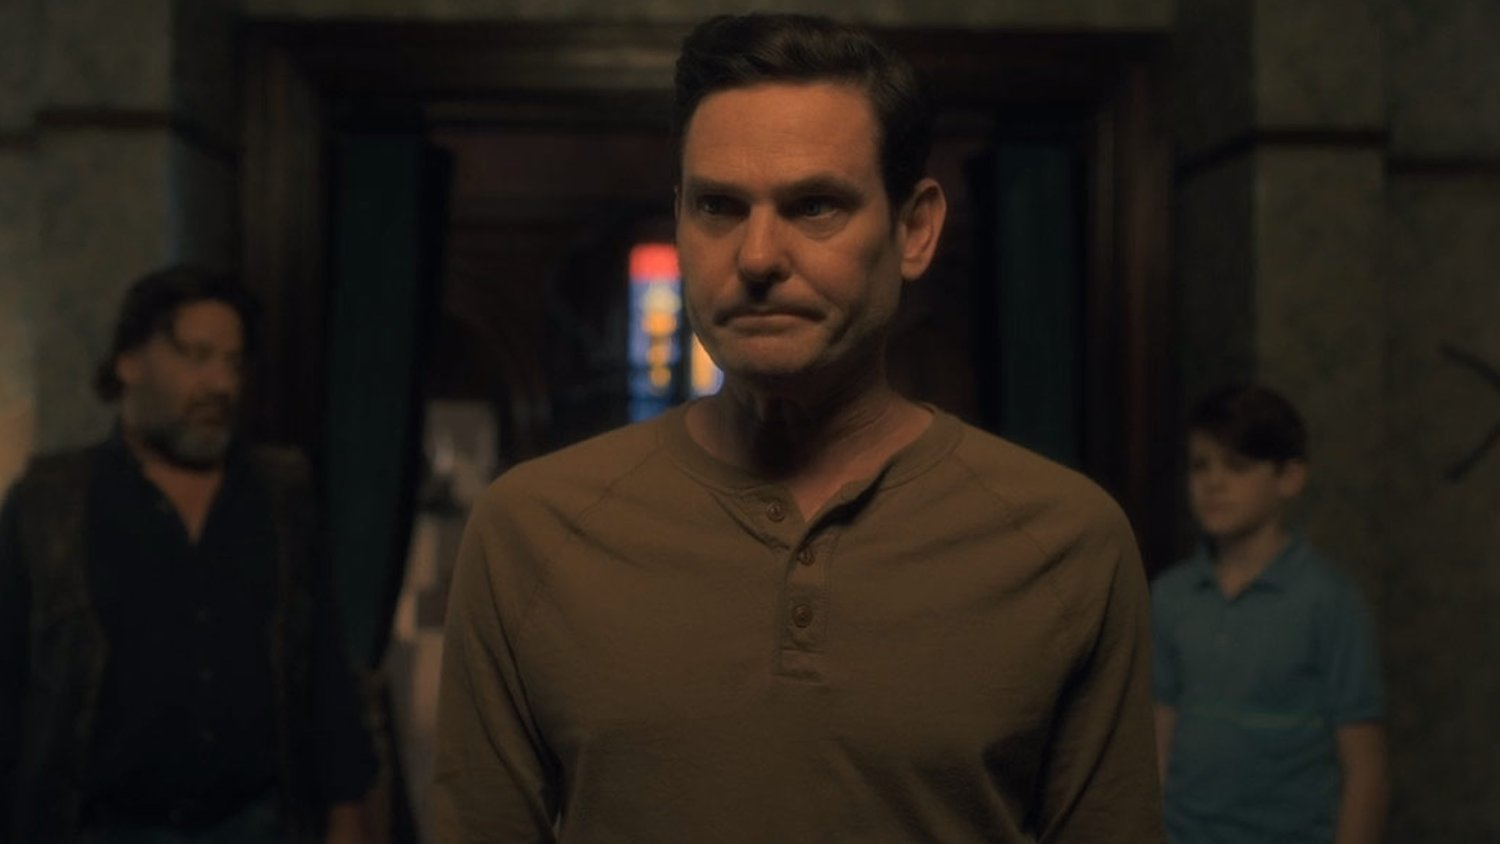 The Director Of The Haunting Of Hill House Offers More Insight On The Awesome Extended Takes In Episode 6 Geektyrant